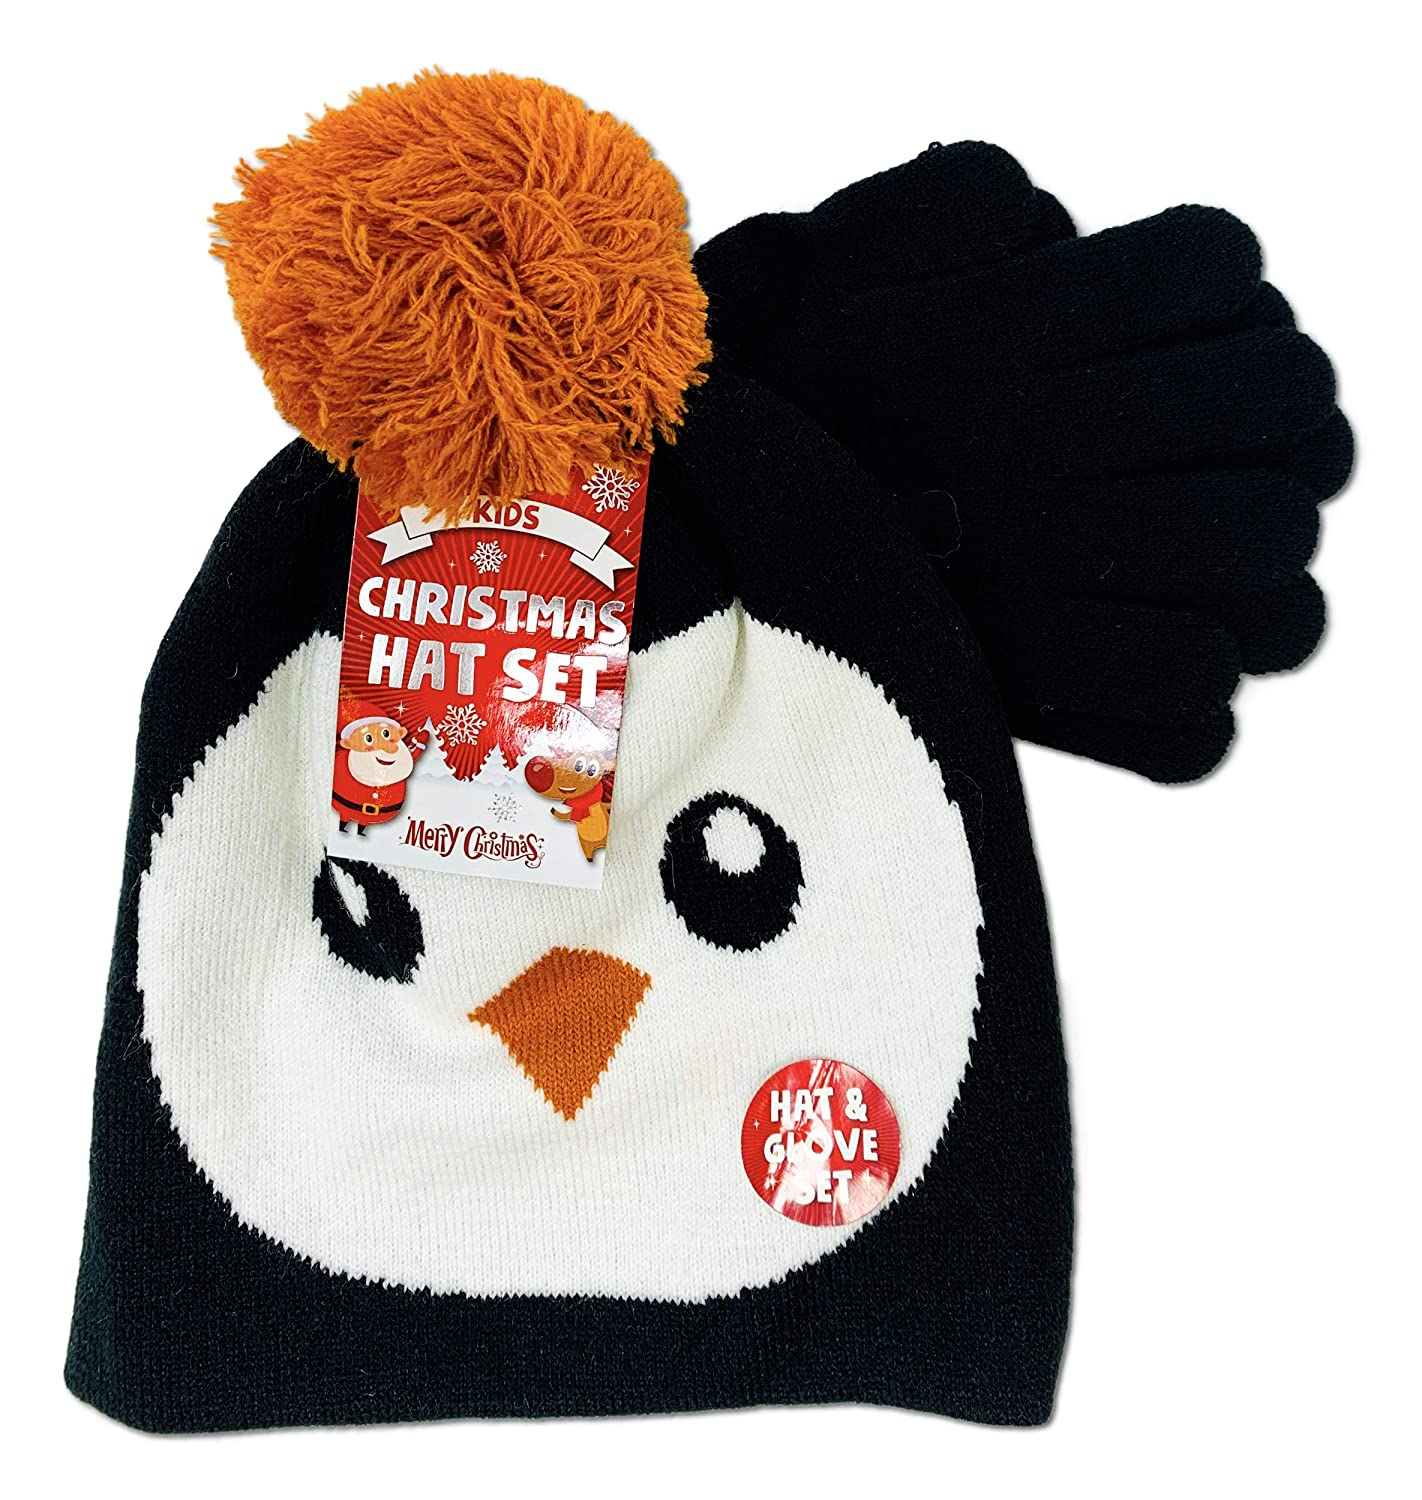 Kids Girls Boys Christmas Themed Super Warm Knitted Novely Hat and Glove Set